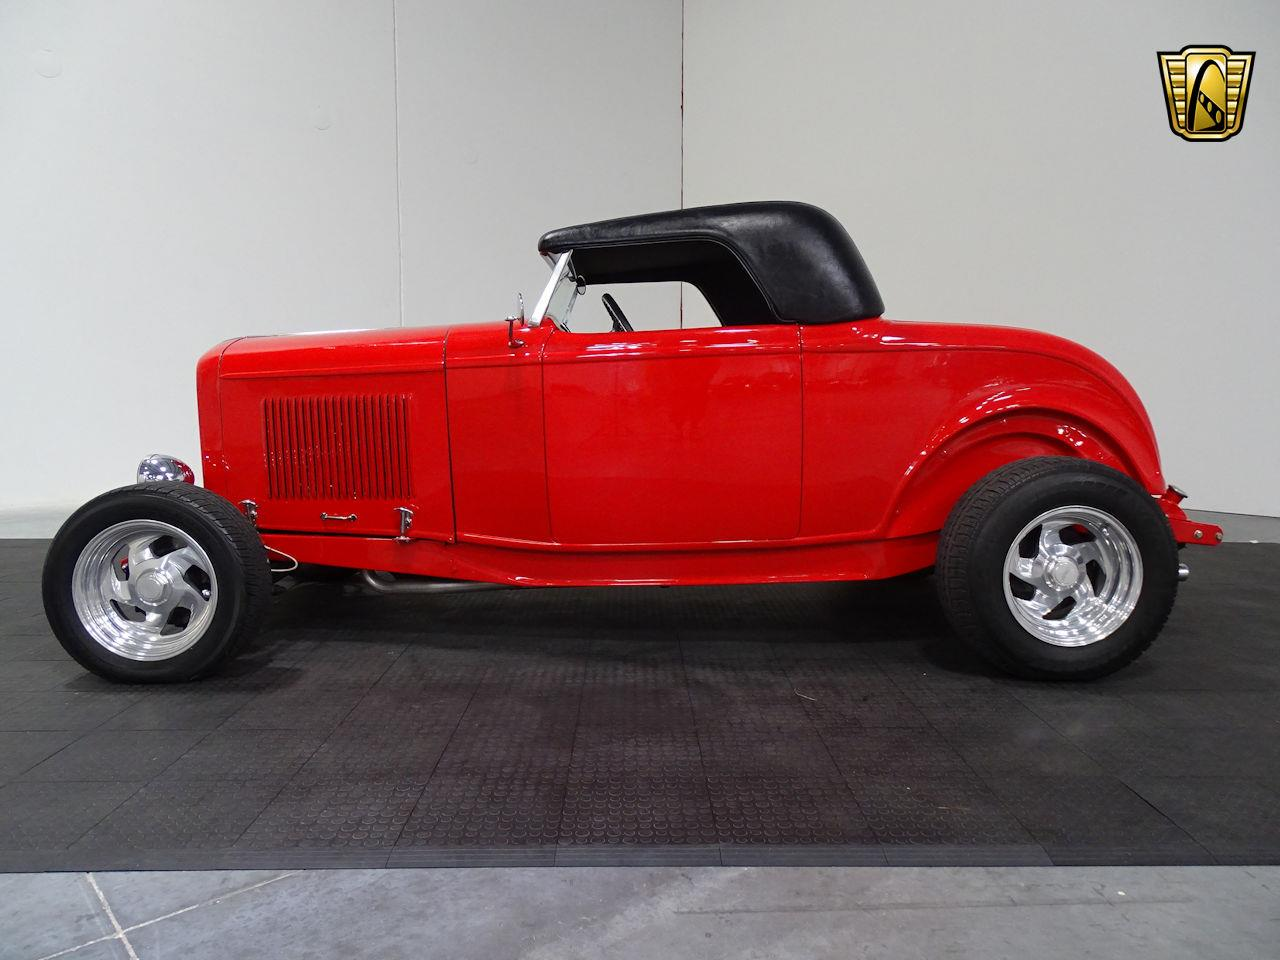 Large Picture of 1932 Ford Roadster located in Texas - $39,595.00 - M3R5